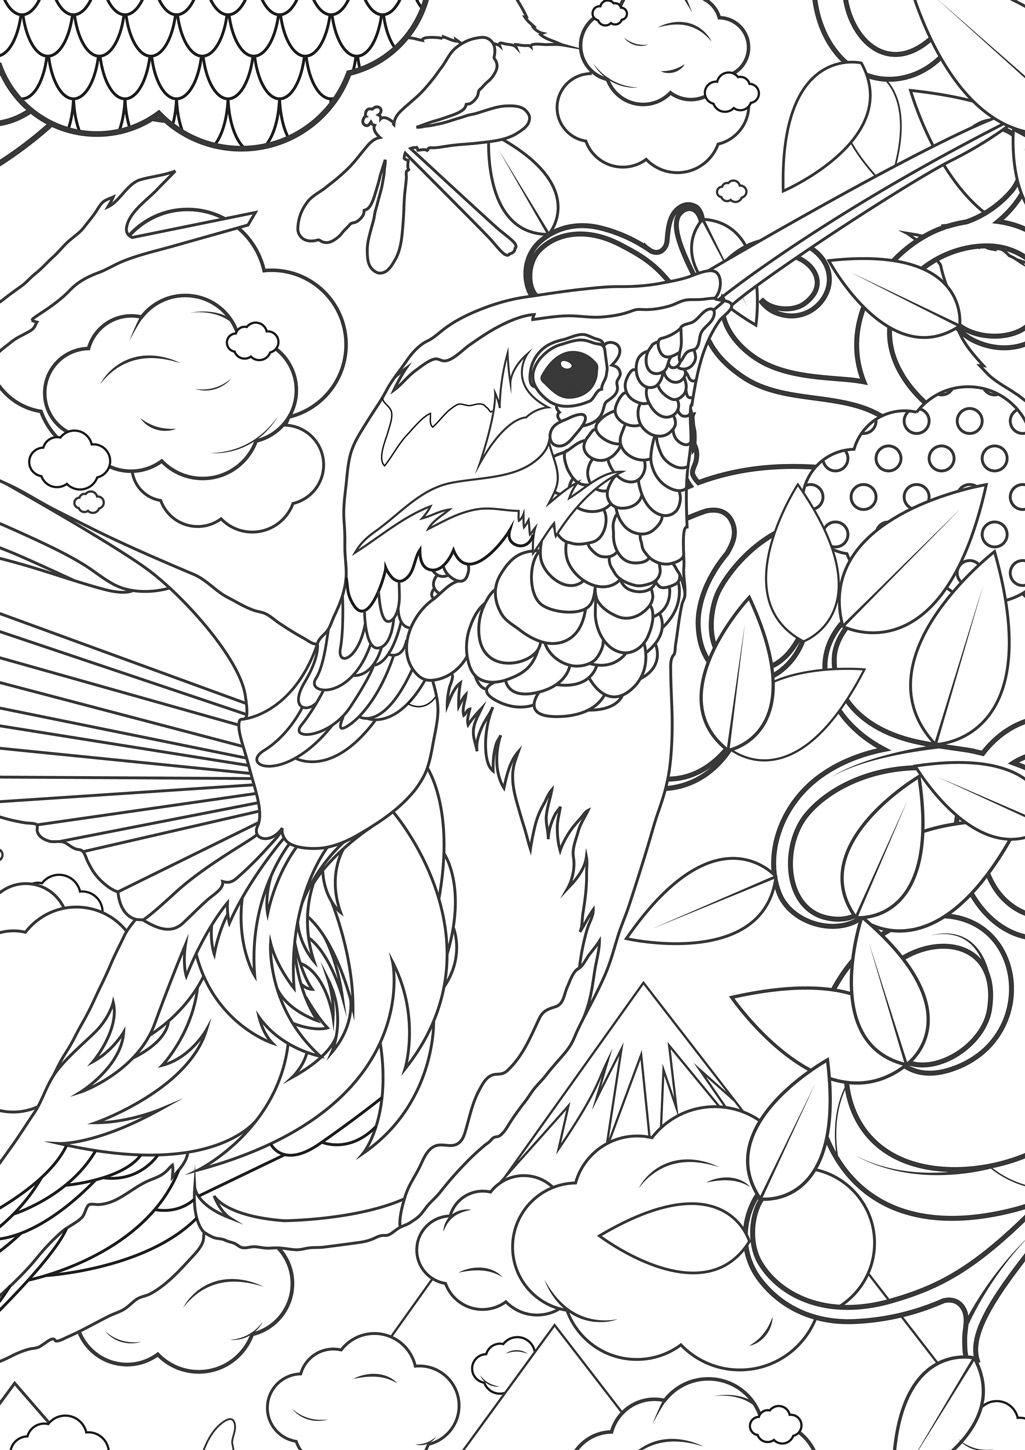 Animal Coloring Pages For Adults Difficult Animals